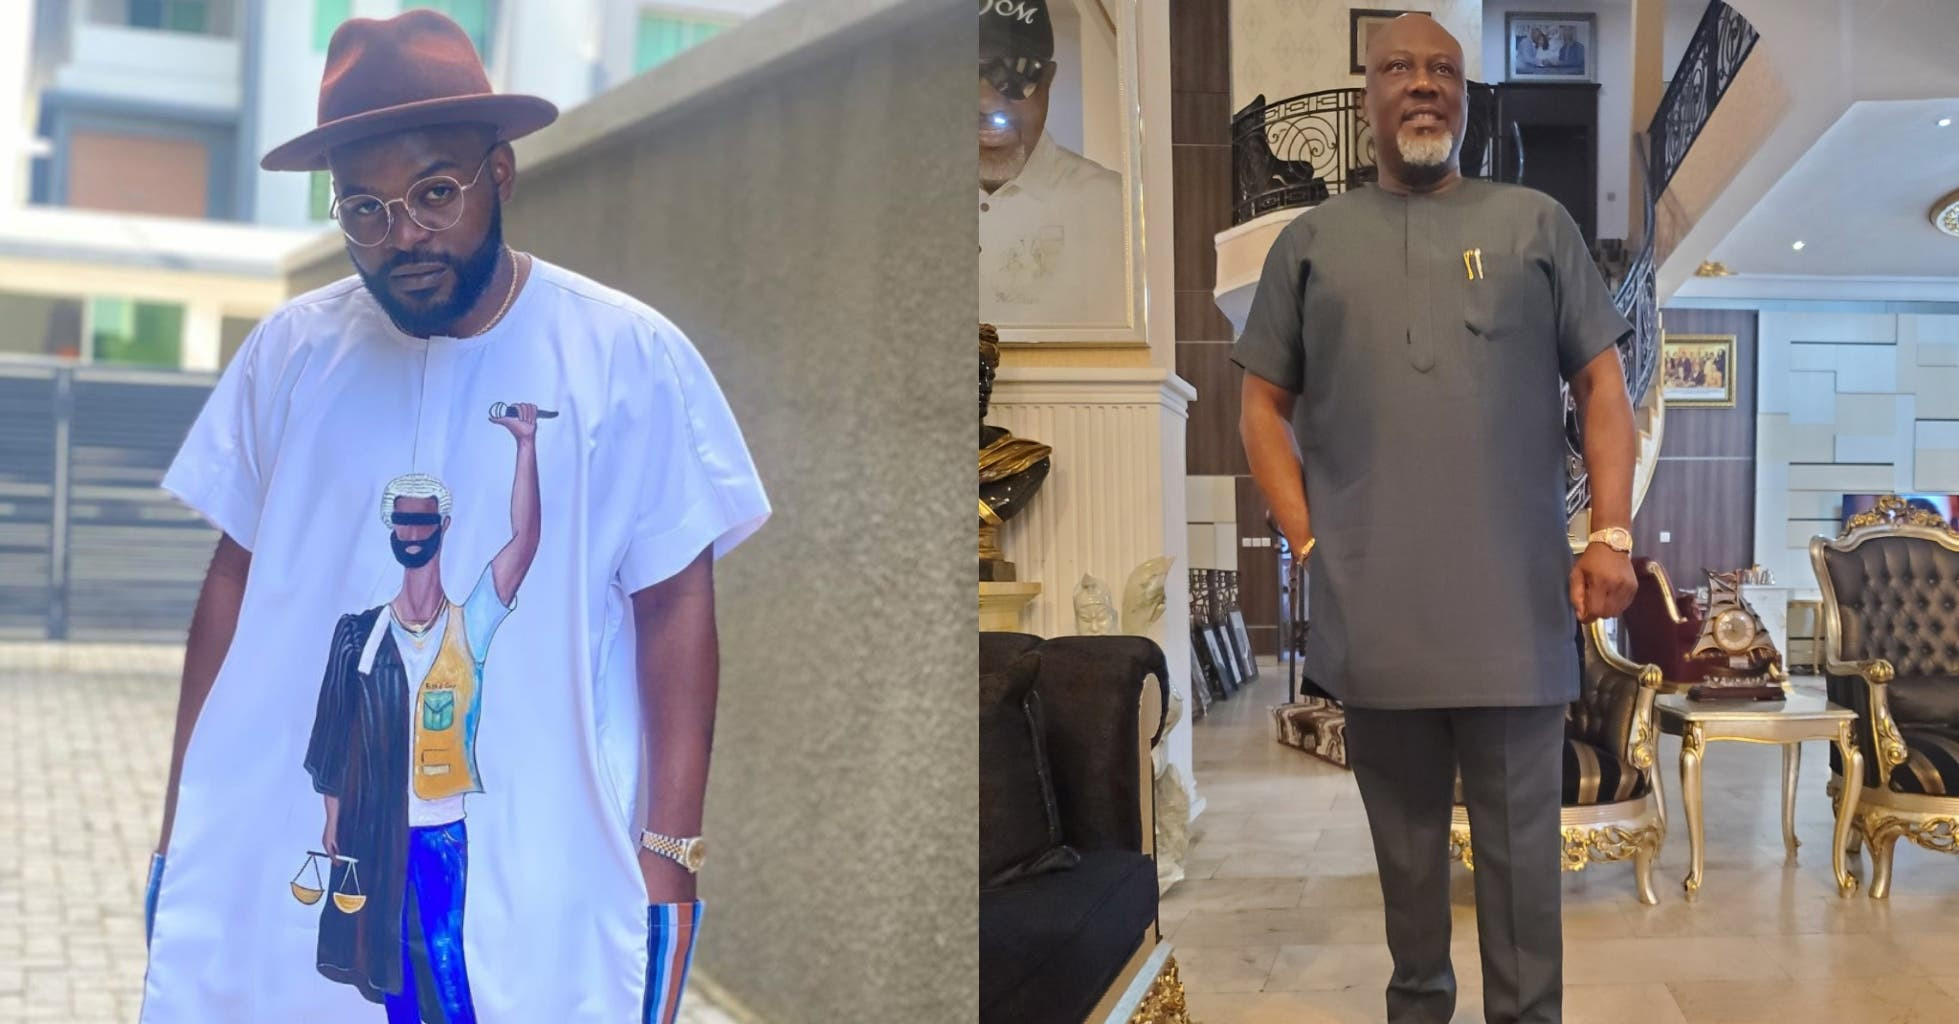 'We go soon face una matter' – Falz slams Dino Melaye over solidarity with #EndSARS protesters